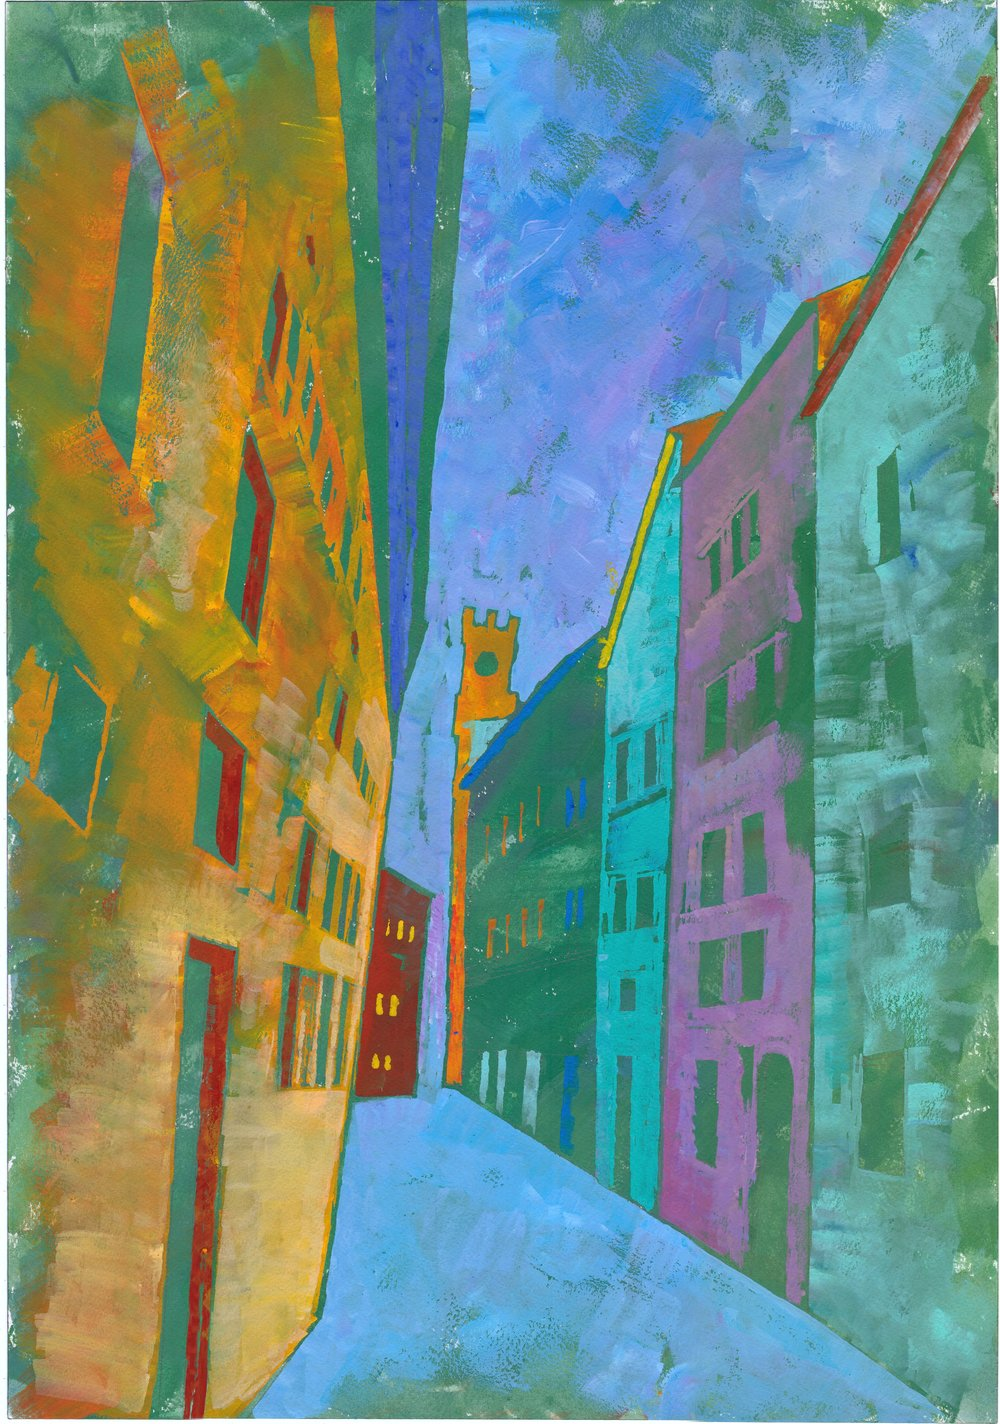 Cerça di Cielo e Terra Searching for Heaven and Earth  Gauche paintings of Cortona inspired by the narrow streets which frame the impression of a path on the earth and views to the sky.